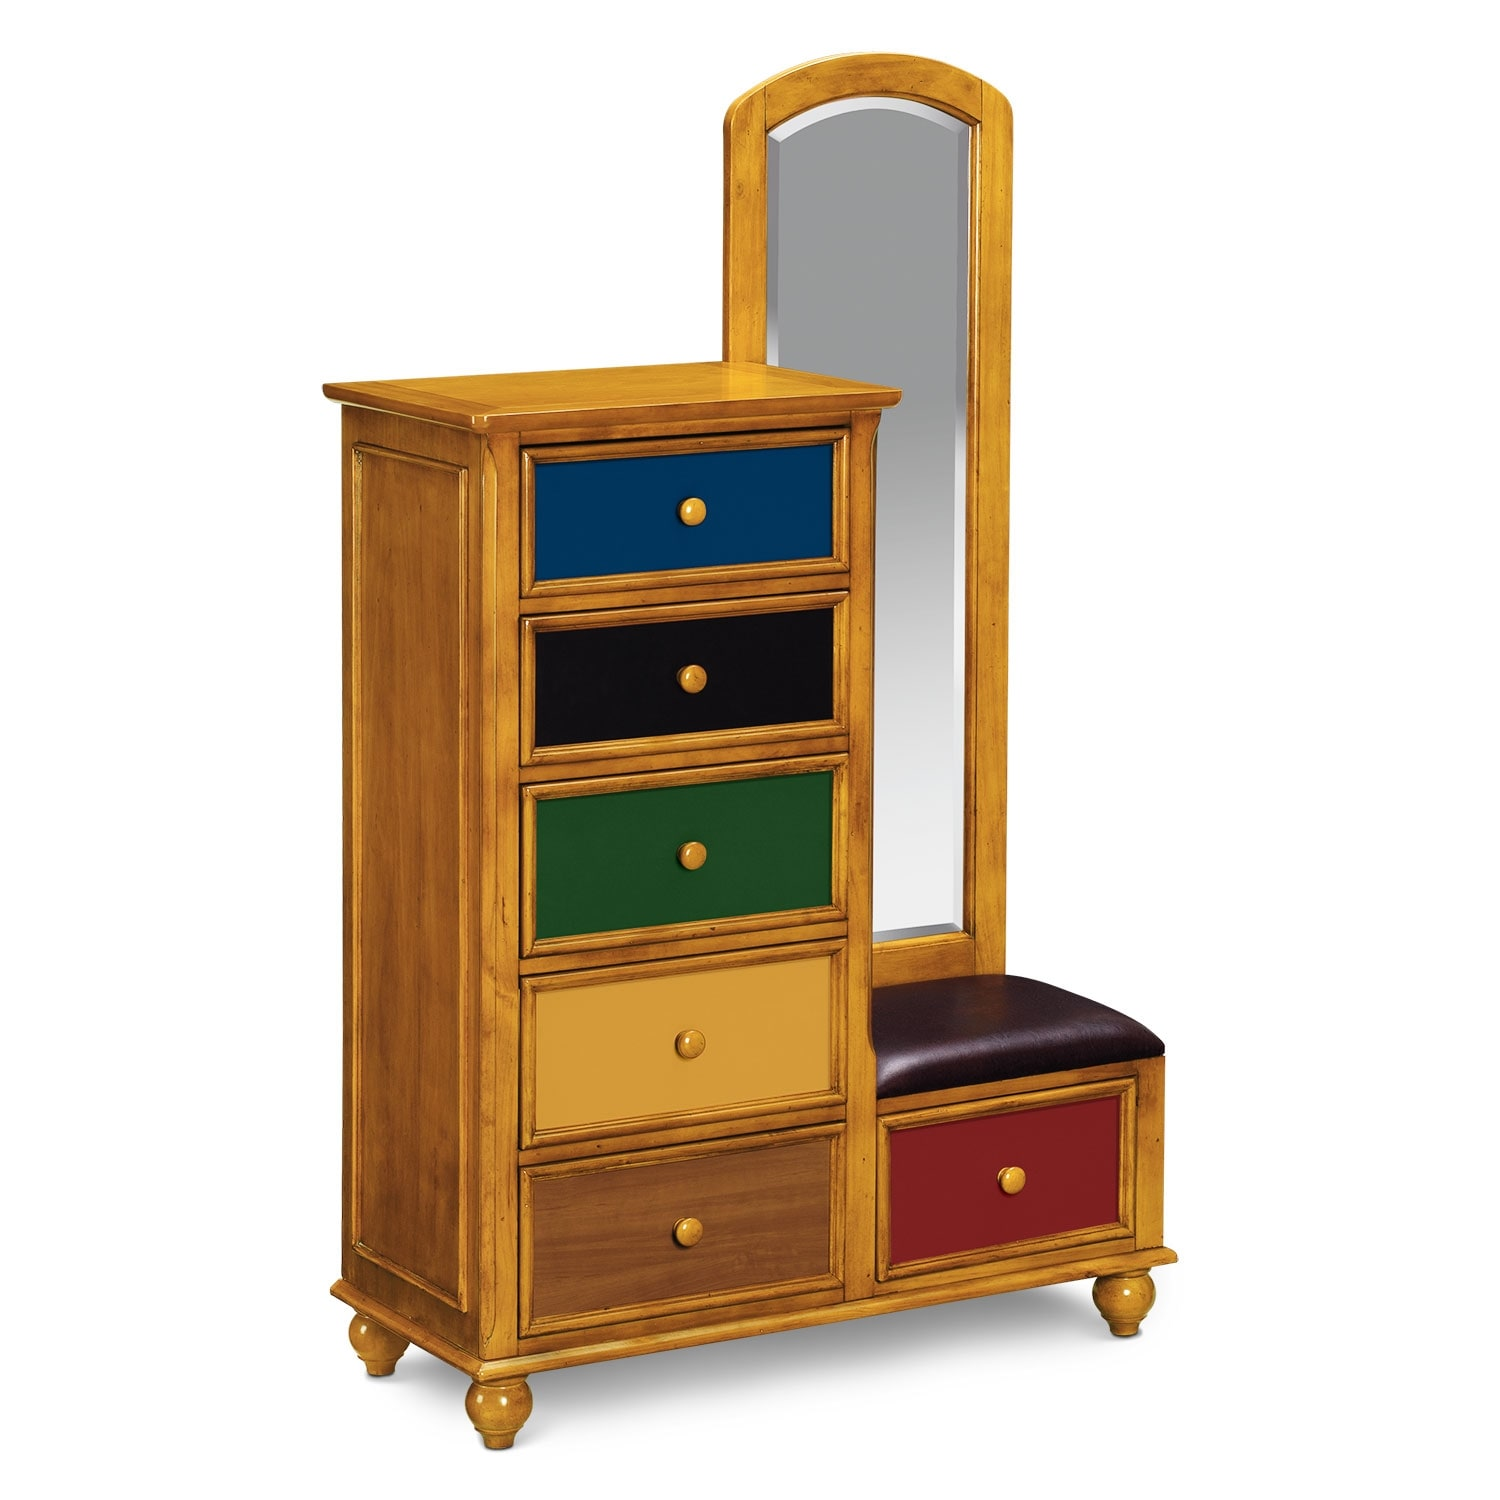 Colorworks Tall Chest and Mirror - Honey Pine